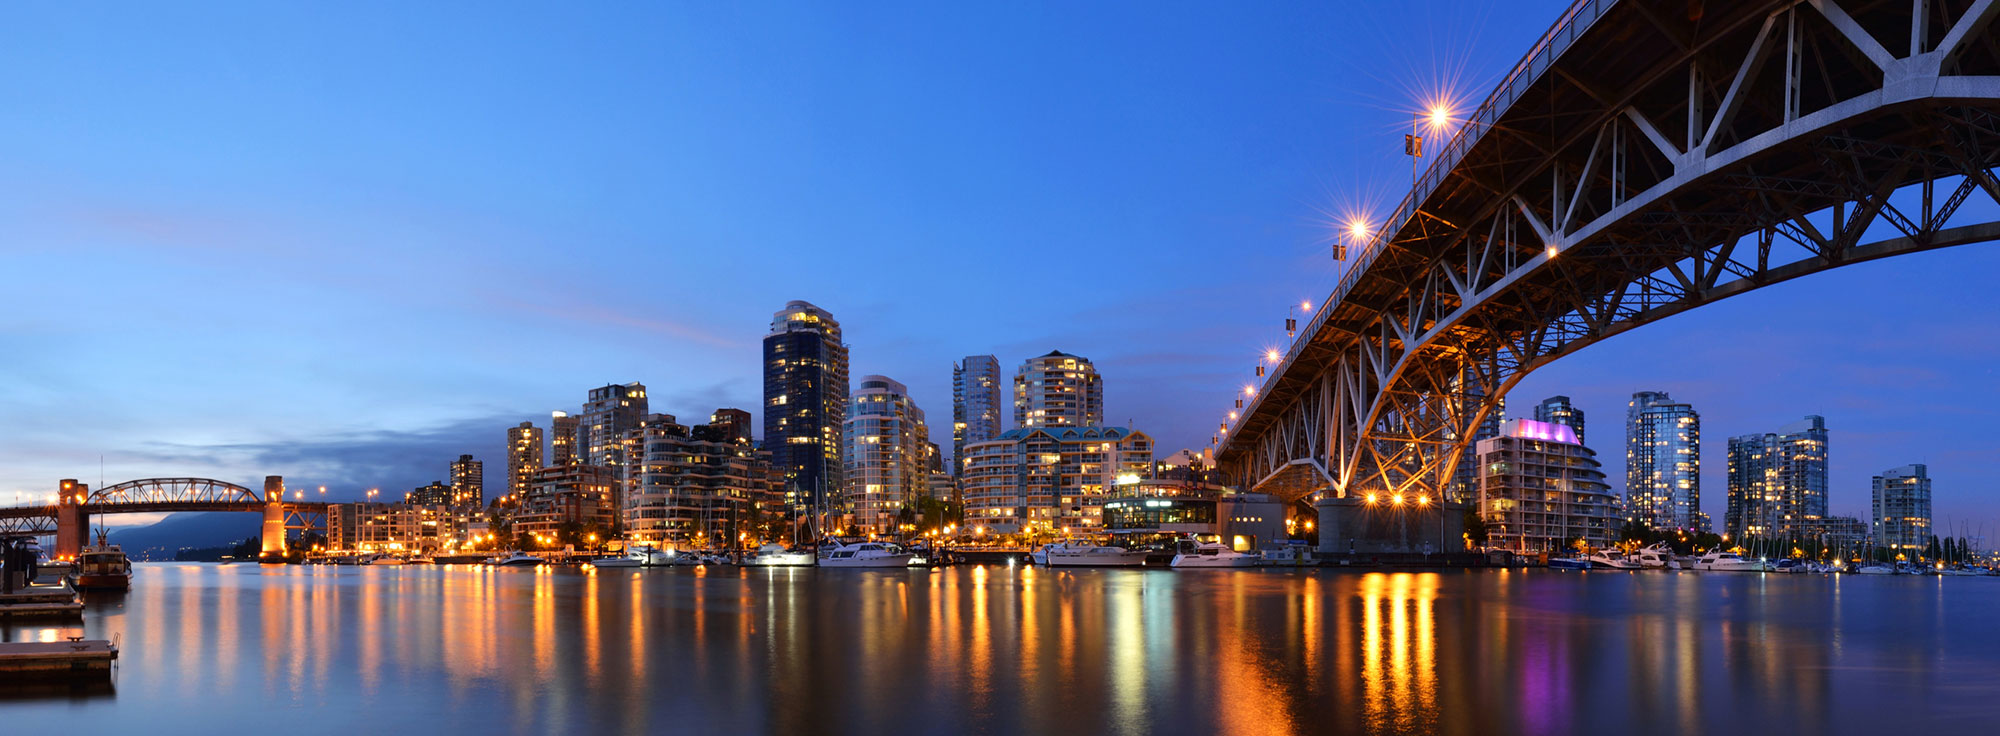 Vancouver Night City View